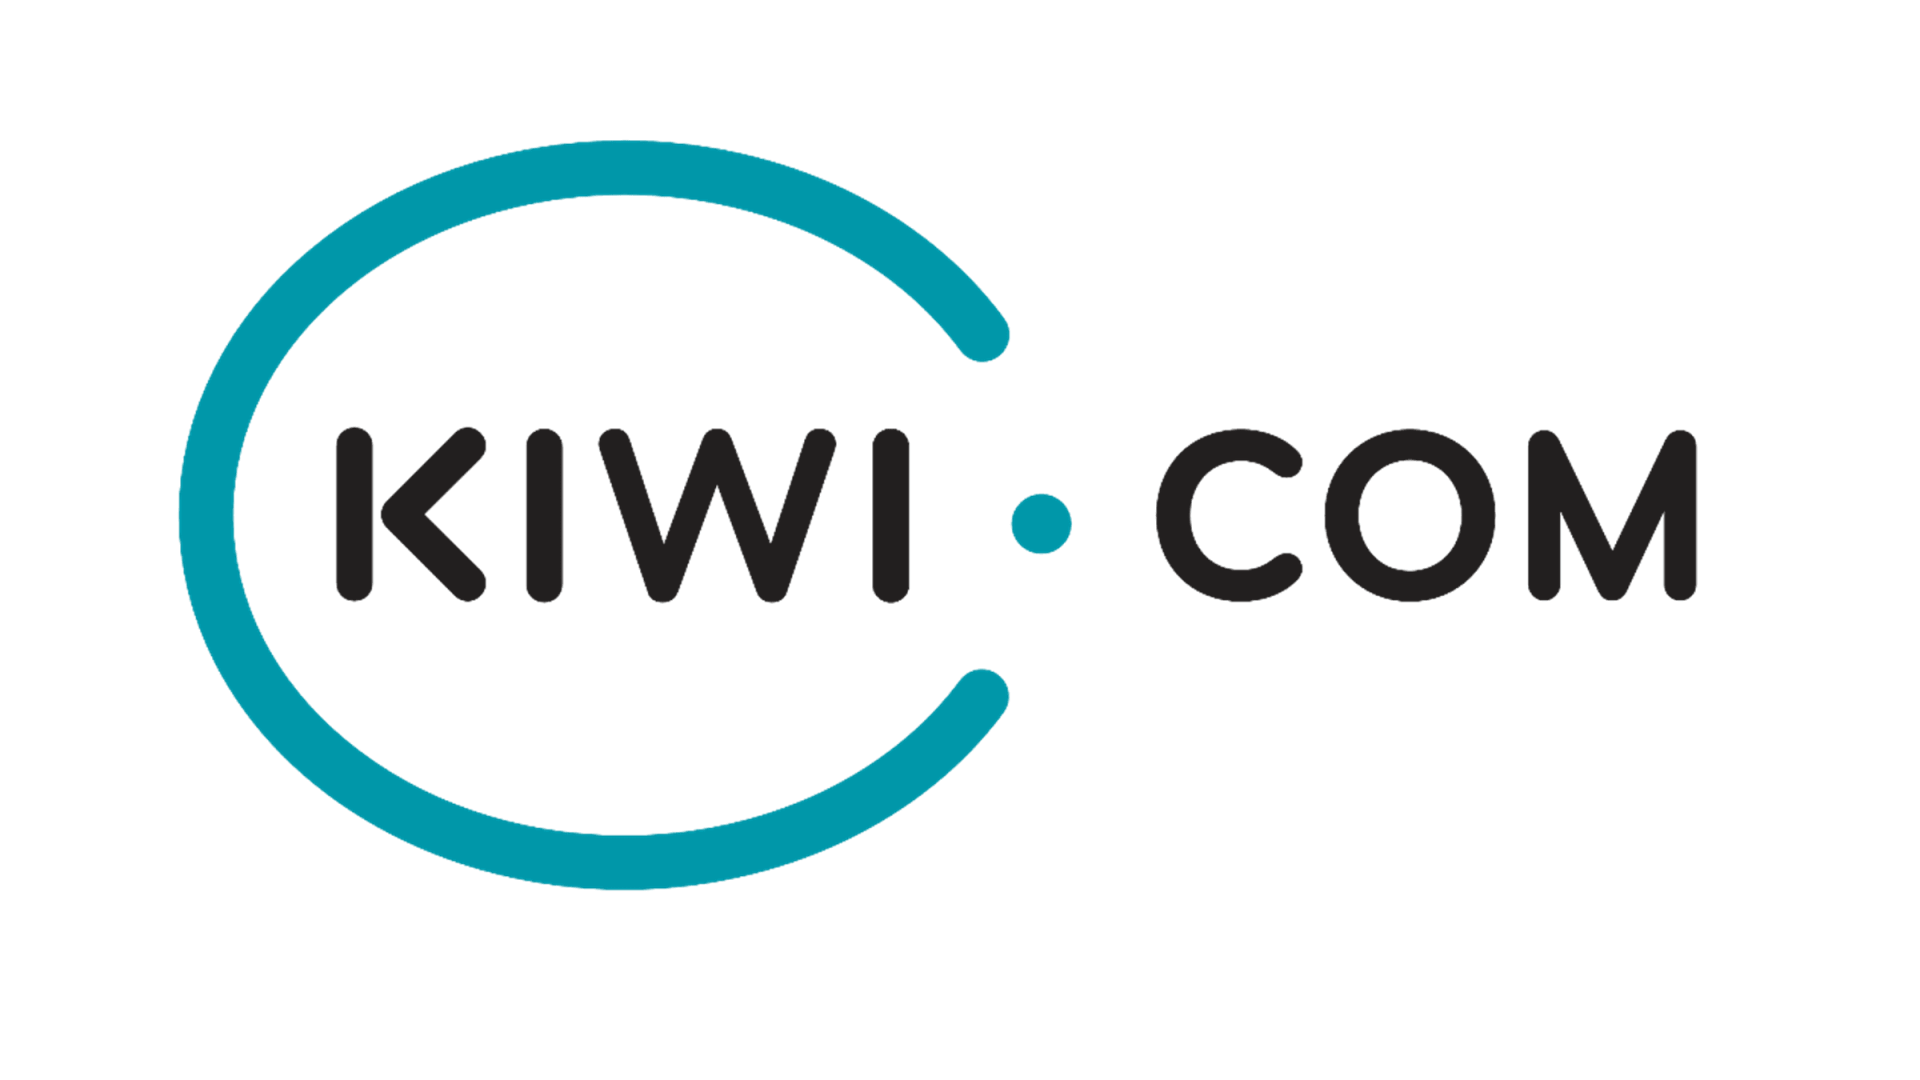 kiwi.com for the broad life travel utilities and find cheap flights